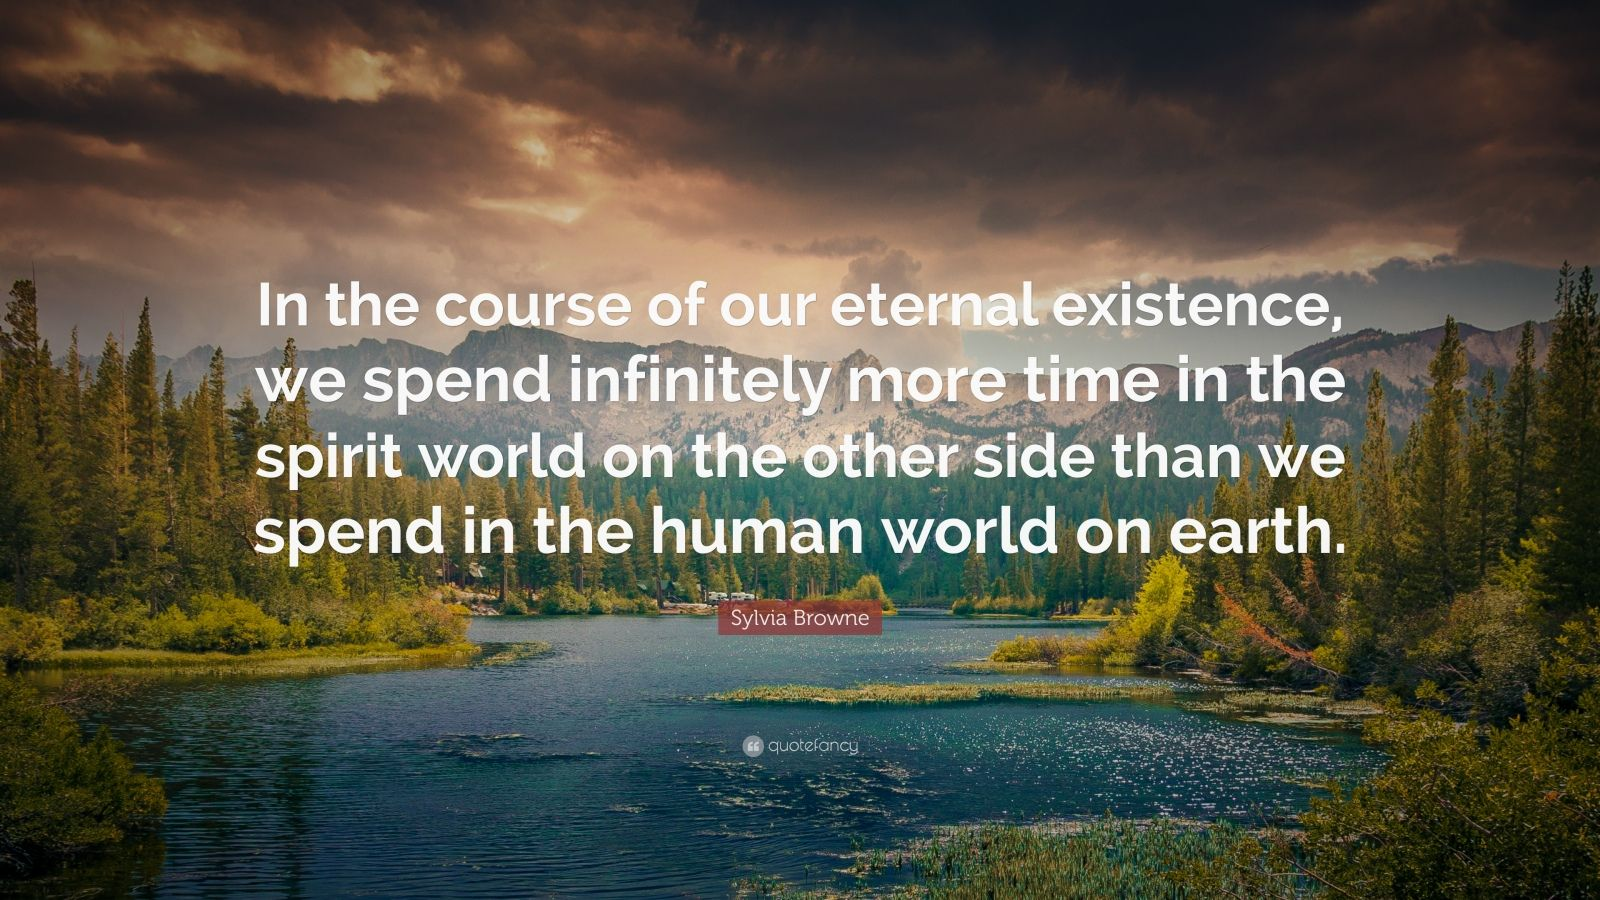 """Sylvia Browne Quote: """"In the course of our eternal existence, we spend infinitely more time in the spirit world on the other side than we spend in the human world on earth."""""""